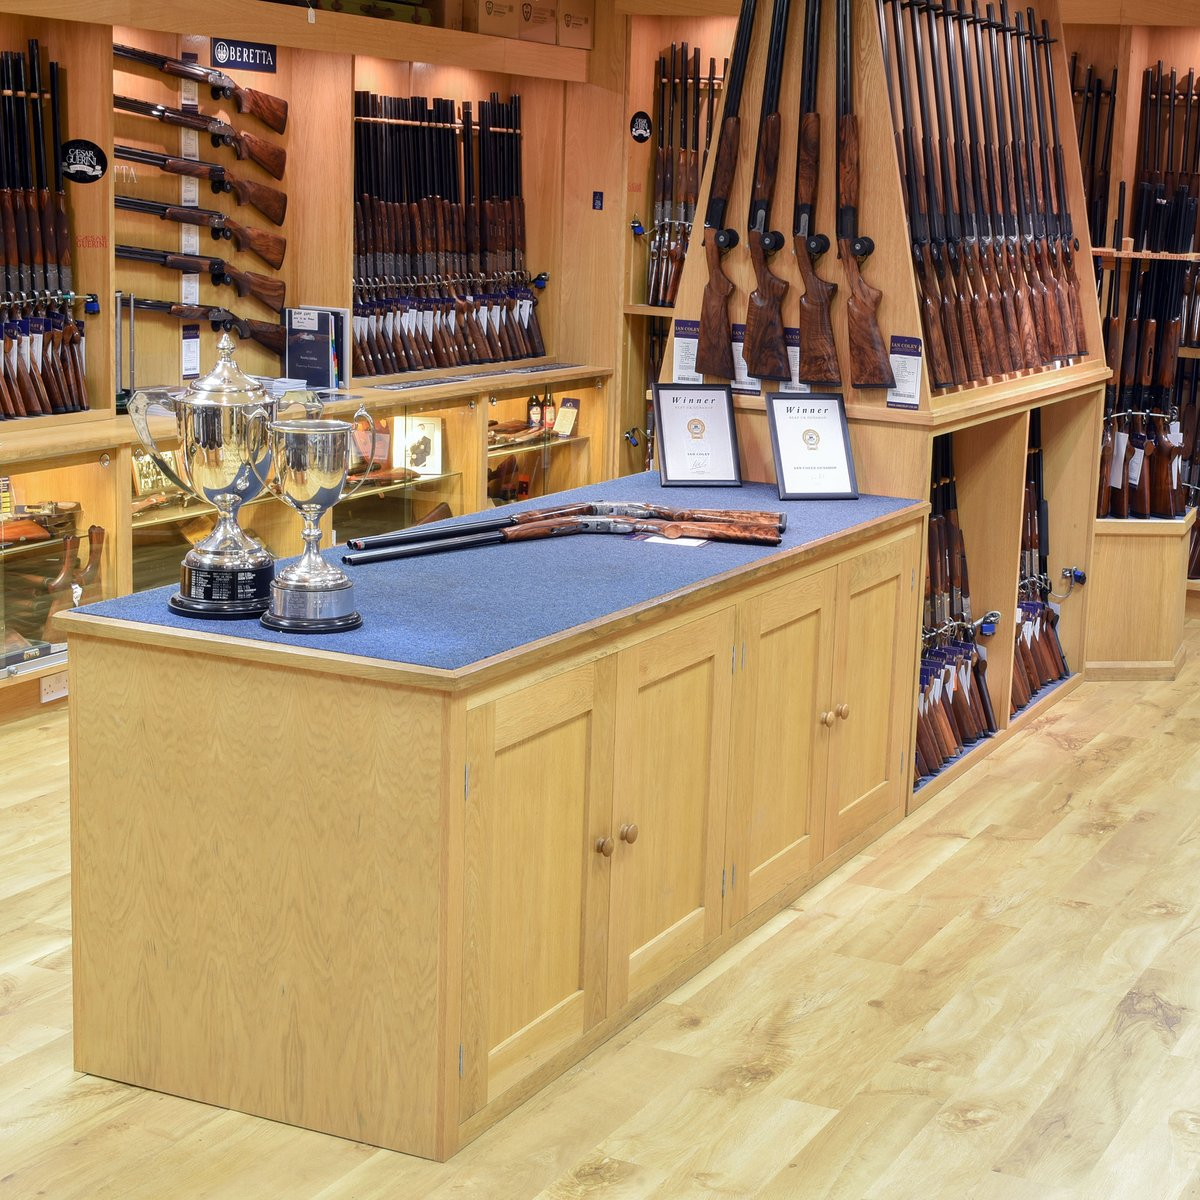 GUN SHOP RE-OPENING ~ TUESDAY 16TH JUNE! Pre-booked appointments only, to maintain social distancing guidelines. Book your appointment online http://www.iancoley.co.uk/gun-shop-appointment … or call 01242 870391 option 1. . #beretta #blaser #browning #caesarguerini #krieghoff #miroku #perazzi #rizzinipic.twitter.com/yofwcFS4Q3